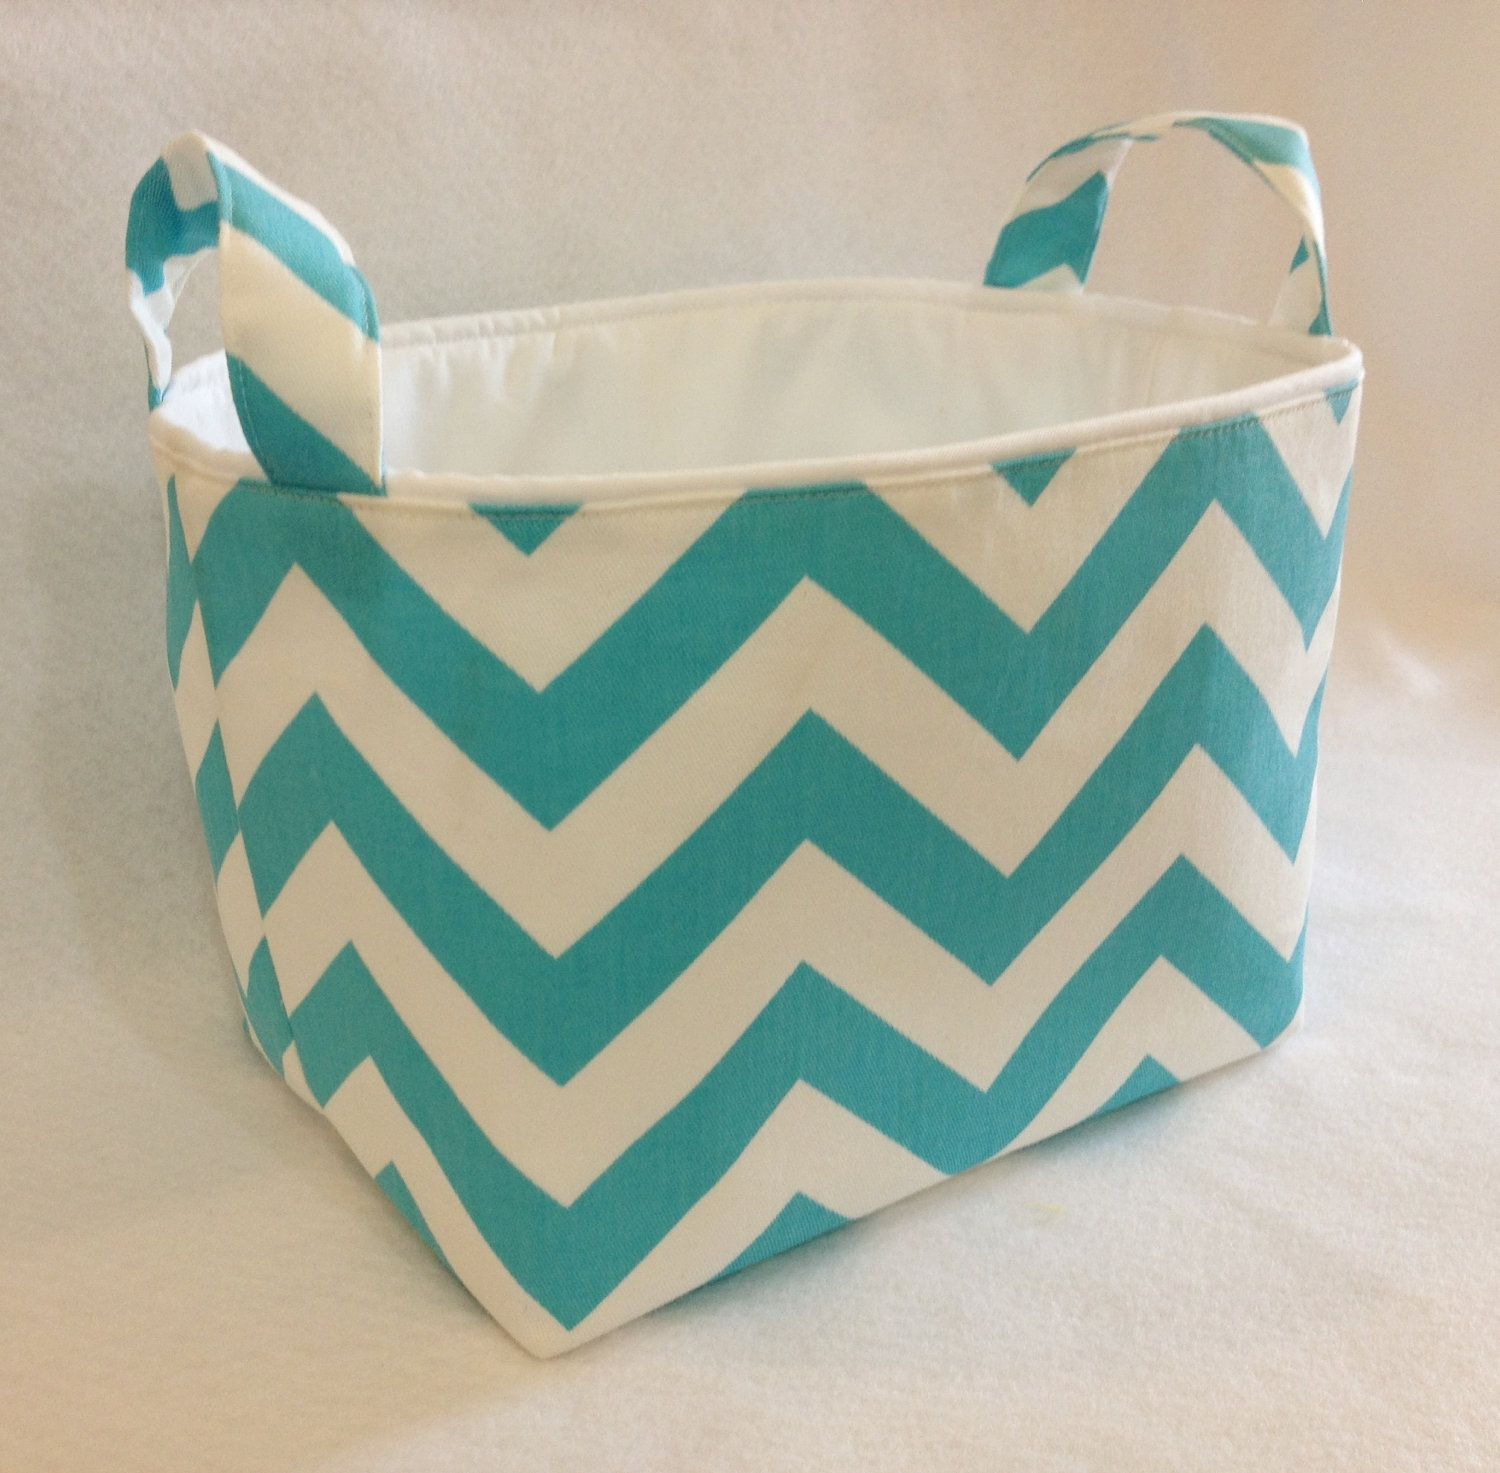 Superior The Bold Chevron Pattern Is So Popular Today. Fabric Storage | Fabric Bin,  Fabric